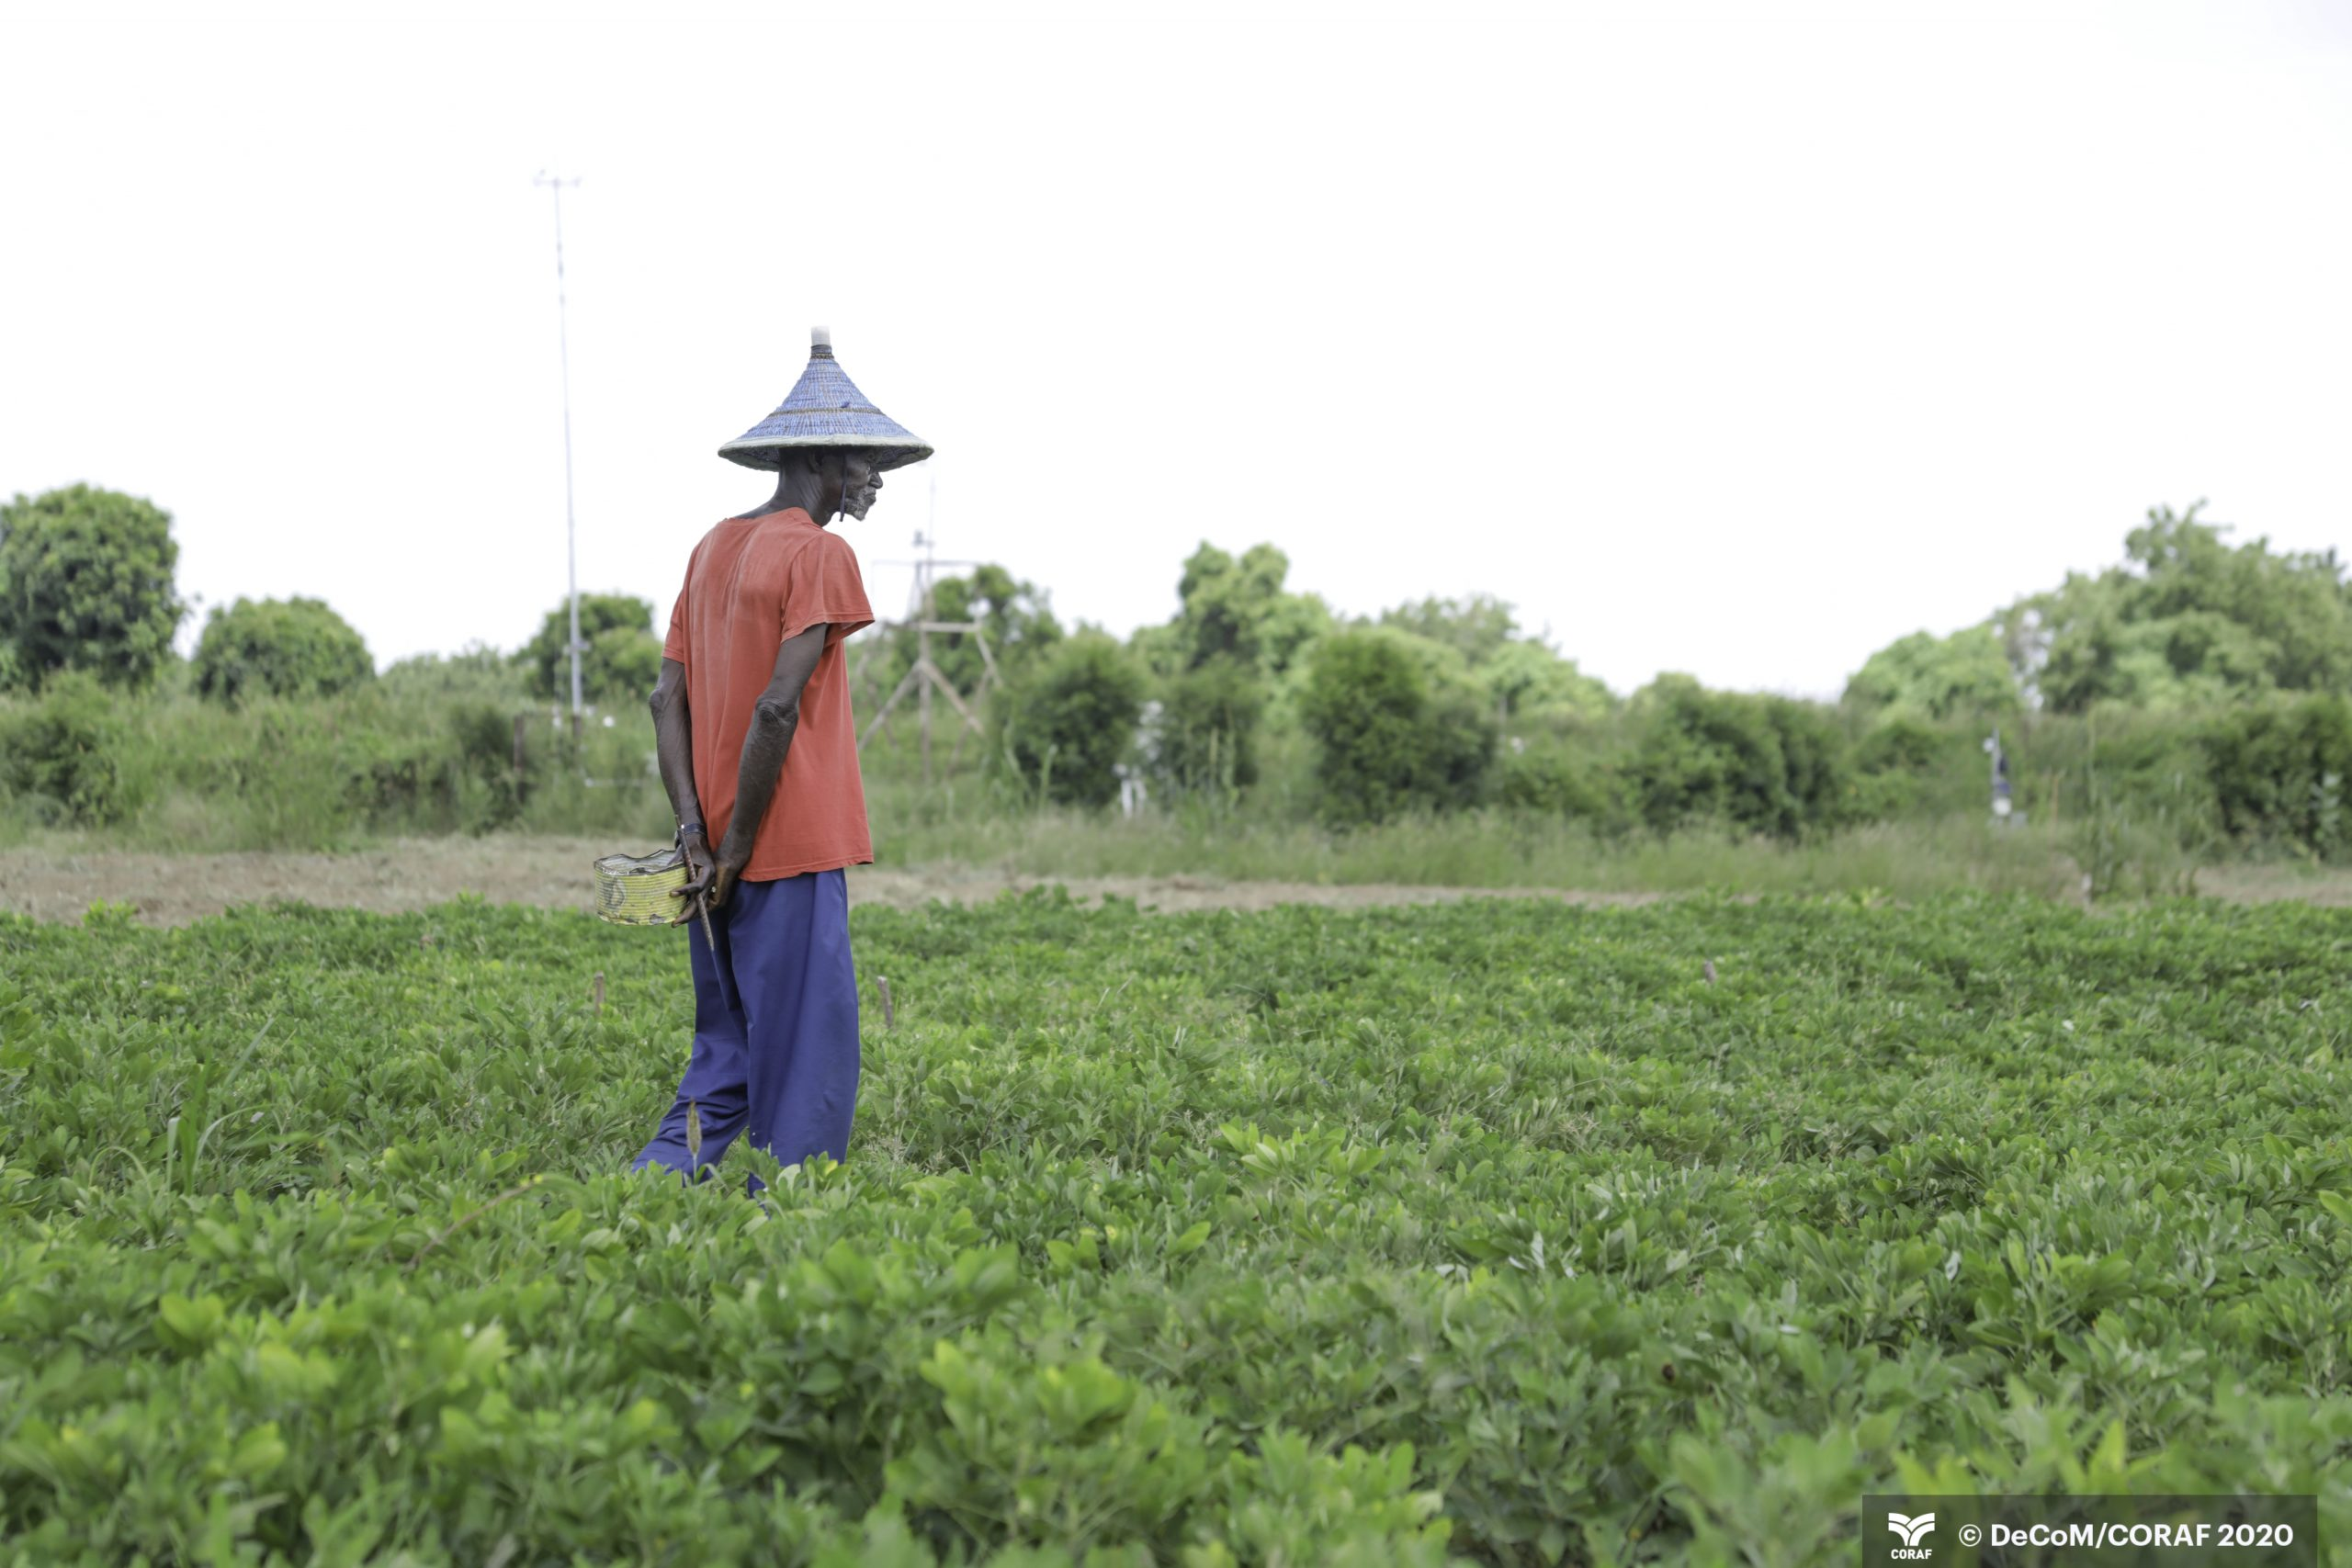 A picture of a farmer in his field